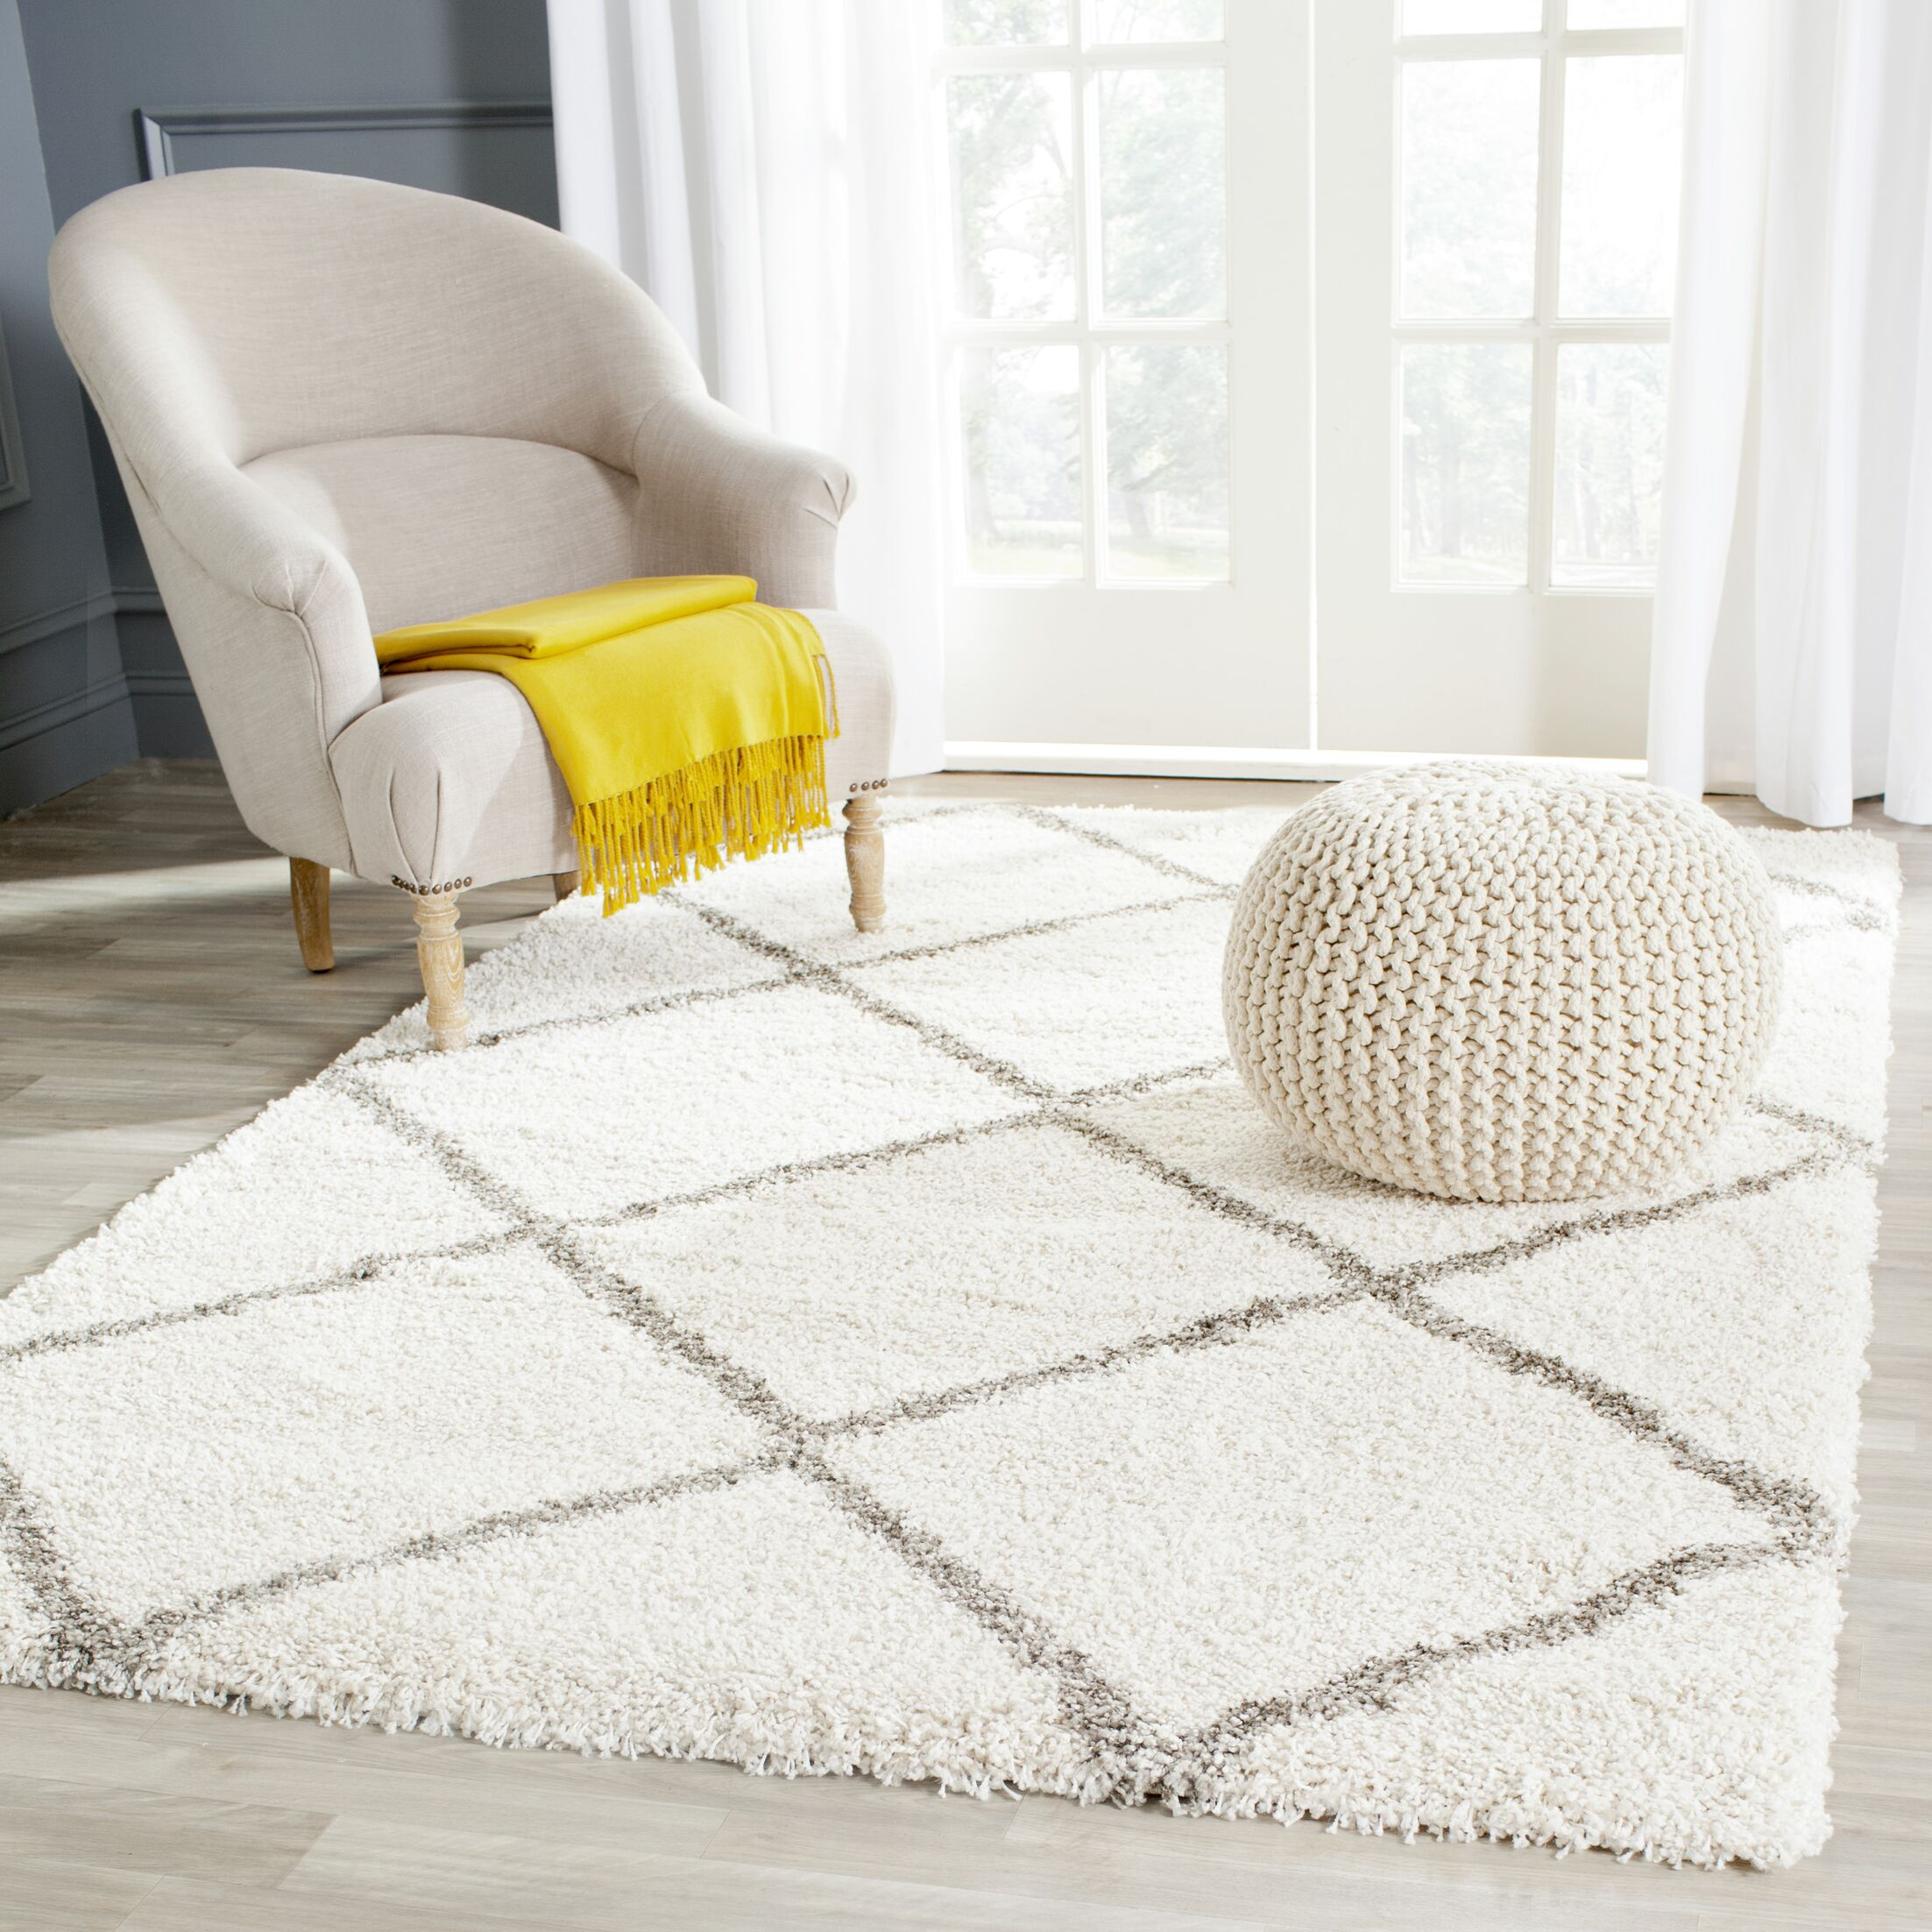 Duhon Ivory/Gray Shag Area Rug Rug Size: Rectangle 2'3